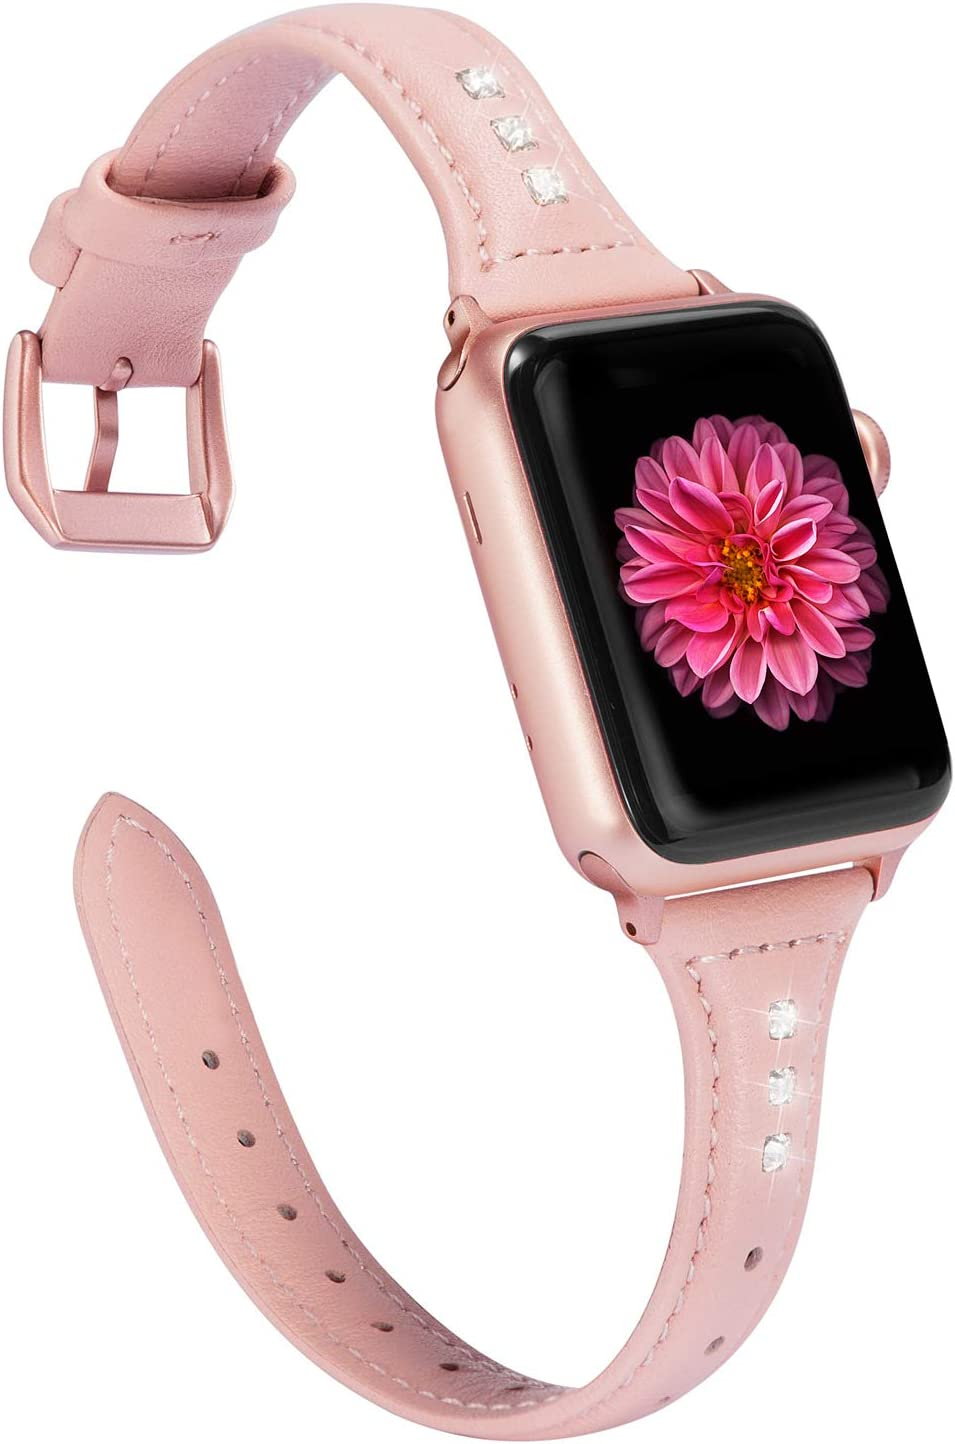 Wearlizer Rose Pink Thin Leather Compatible with Apple Watch Band 42mm 44mm iWatch SE Womens Rhinestone Strap Beauty Slim Wristband Replacement Dressy Bracelet (Rose Gold Clasp) Series 4 3 2 1